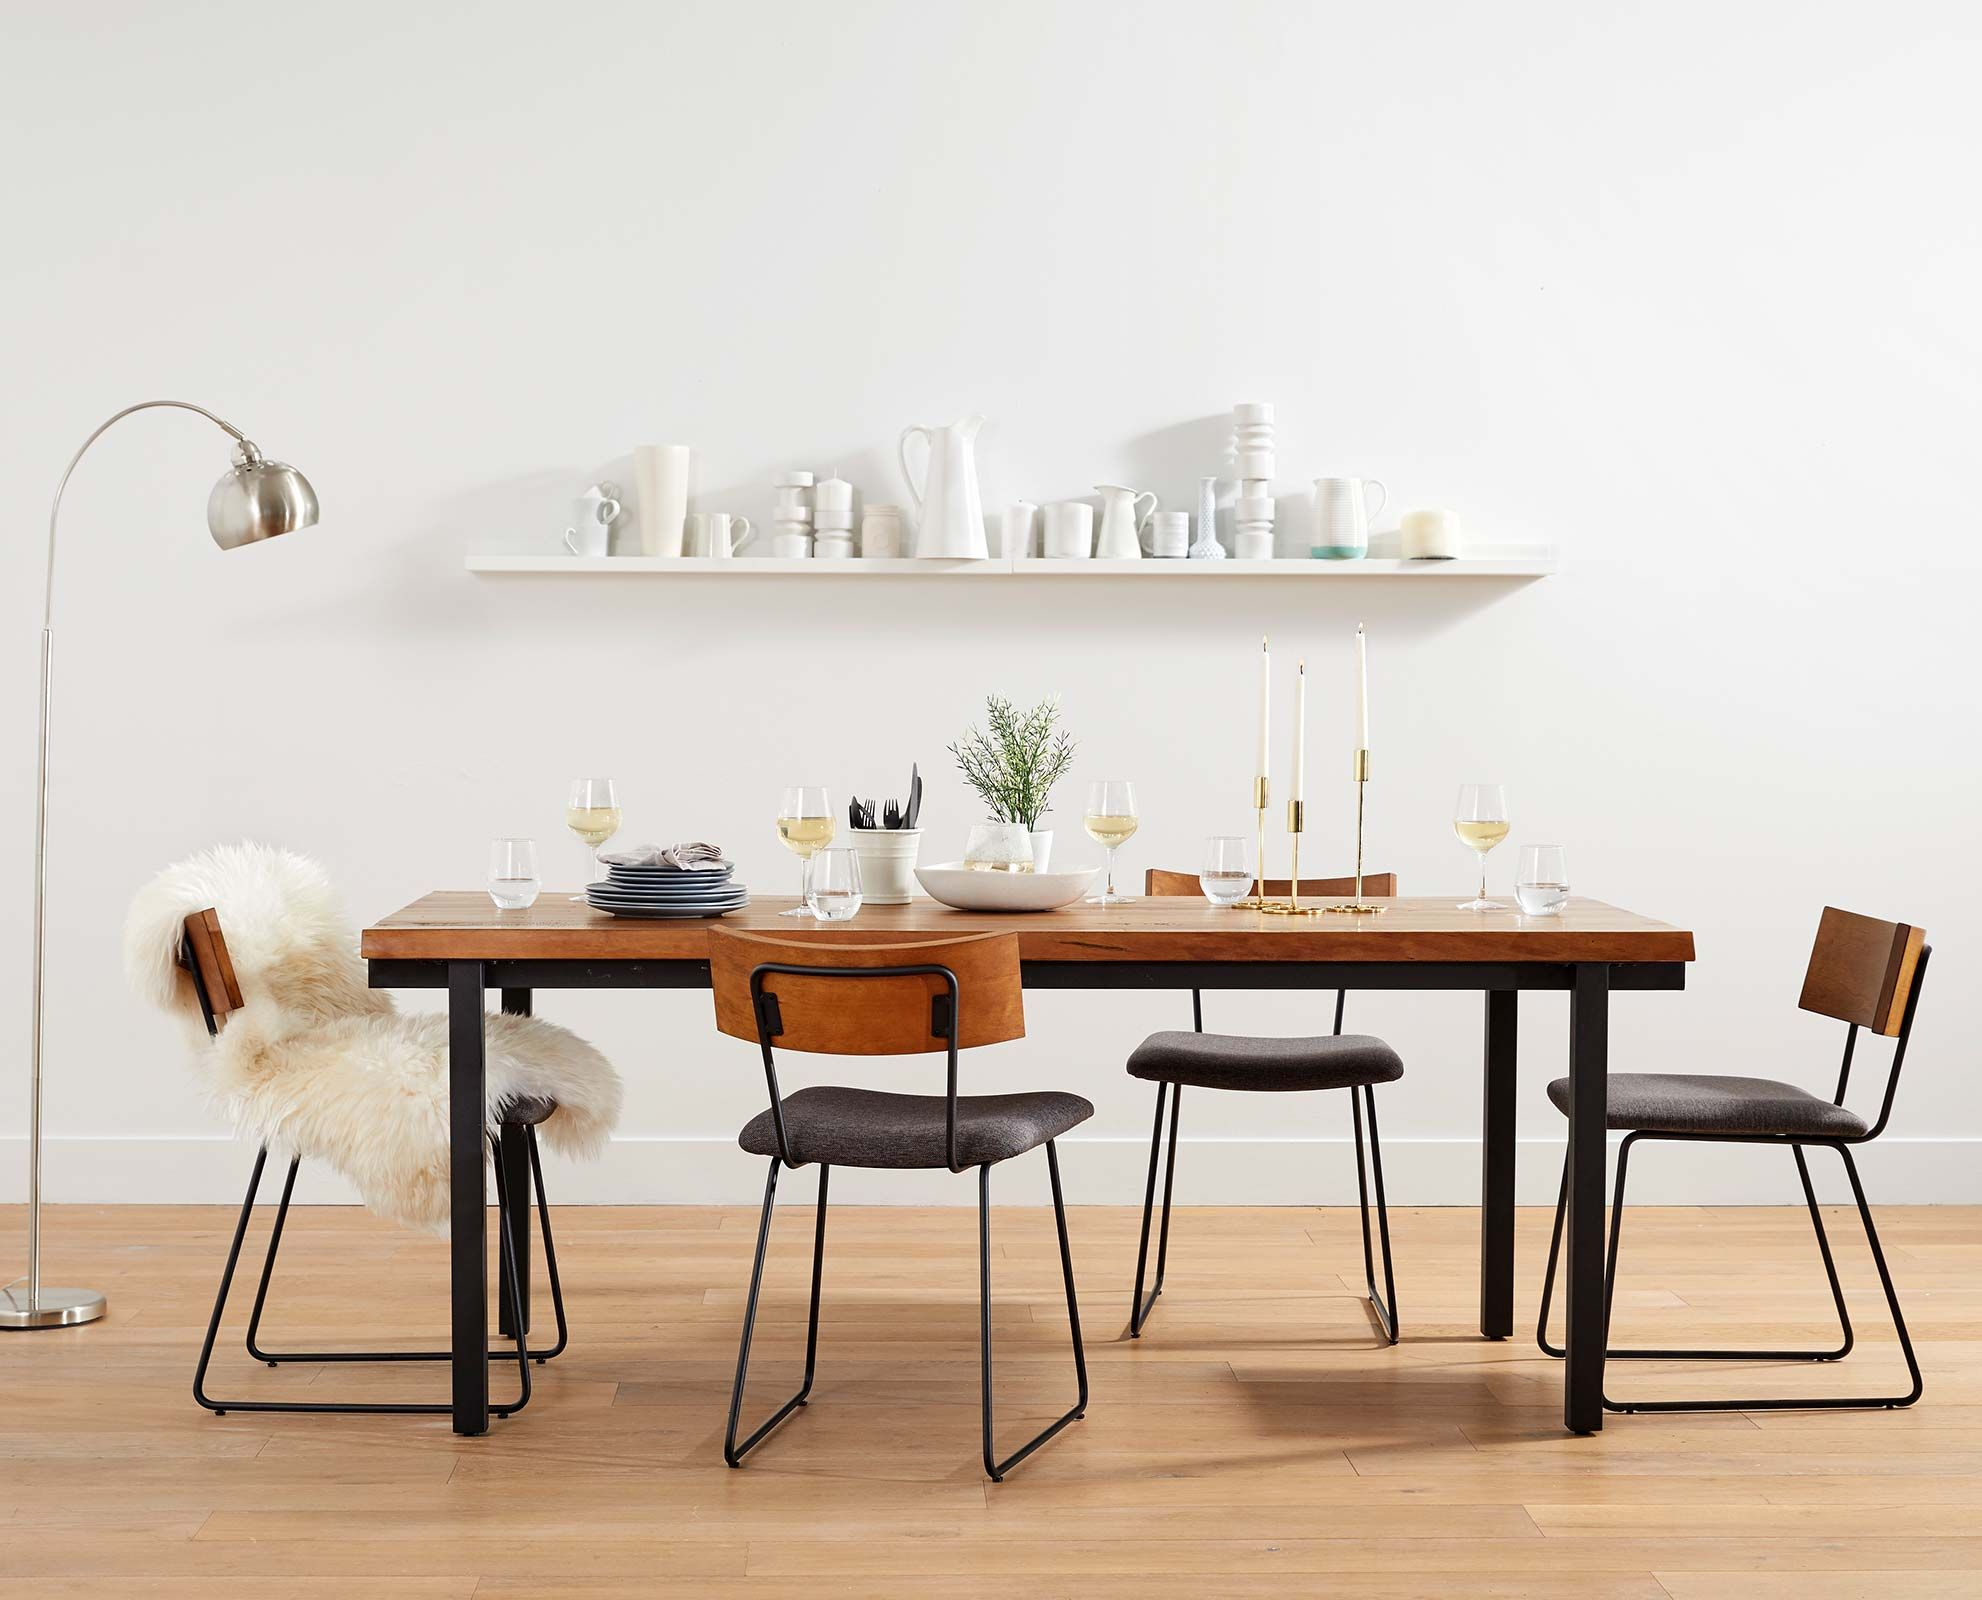 Dania - The traditional farm table meets rustic industrial style ...